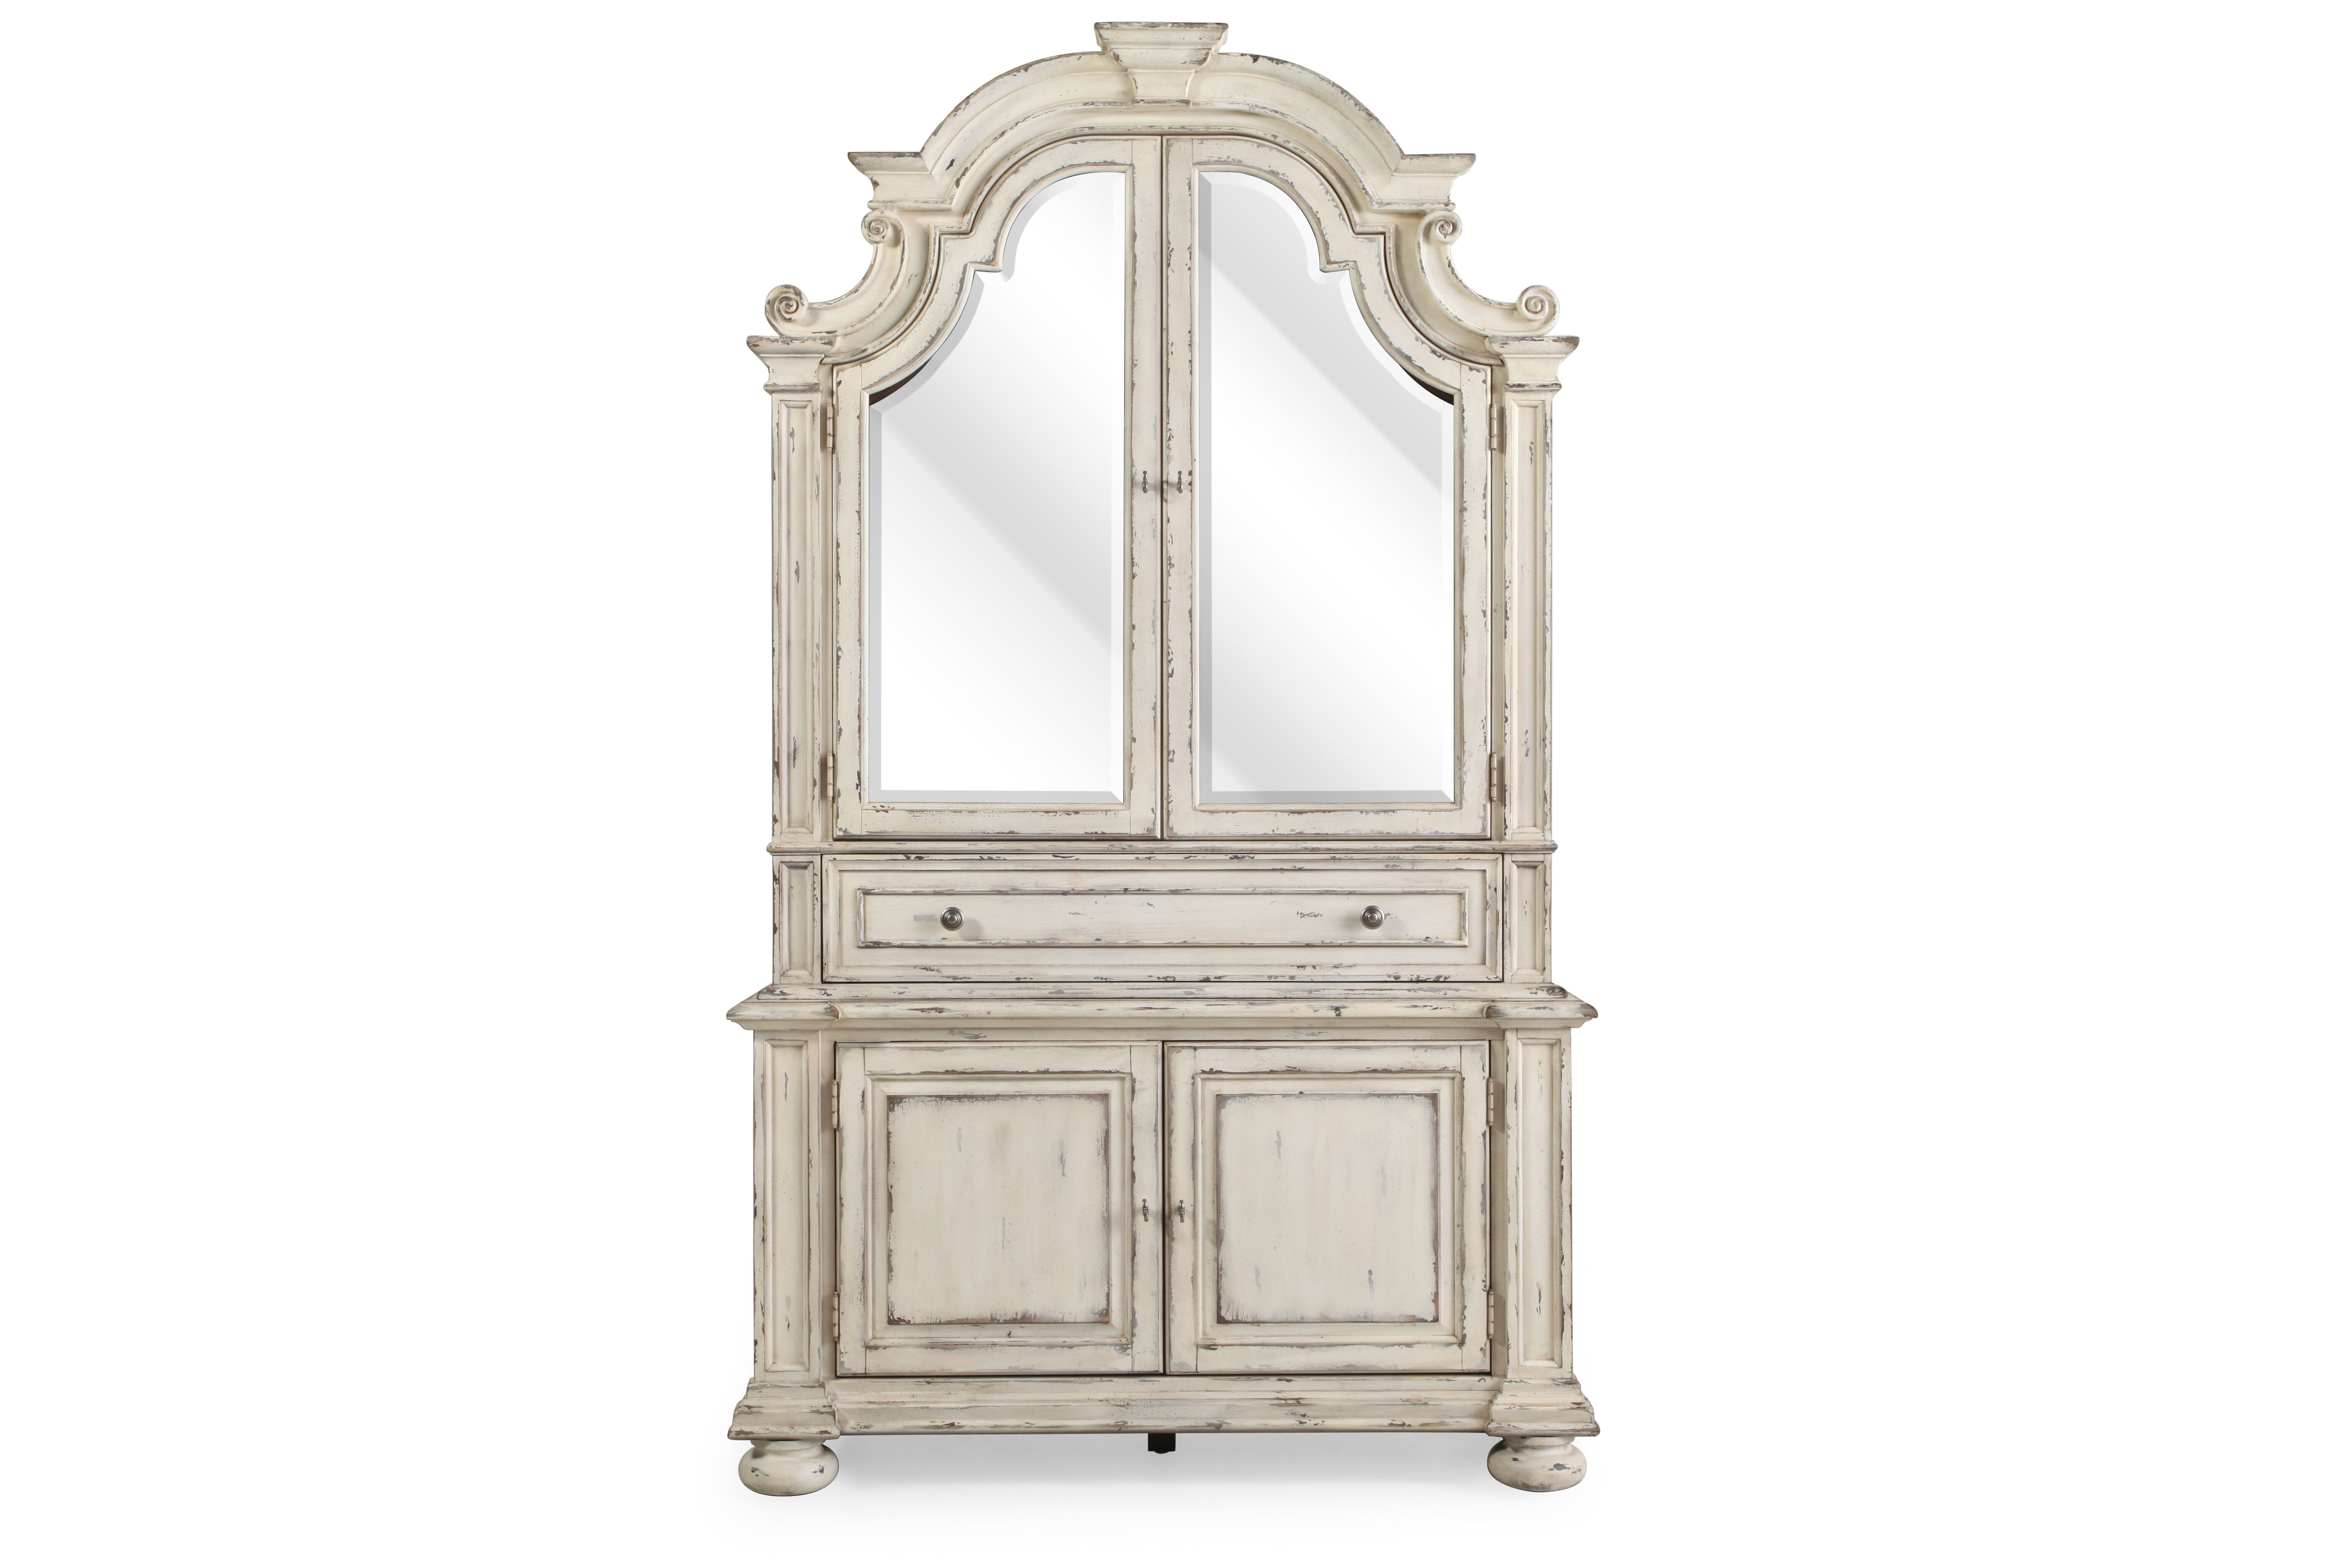 Marvelous Hooker Sanctuary Display China Cabinet